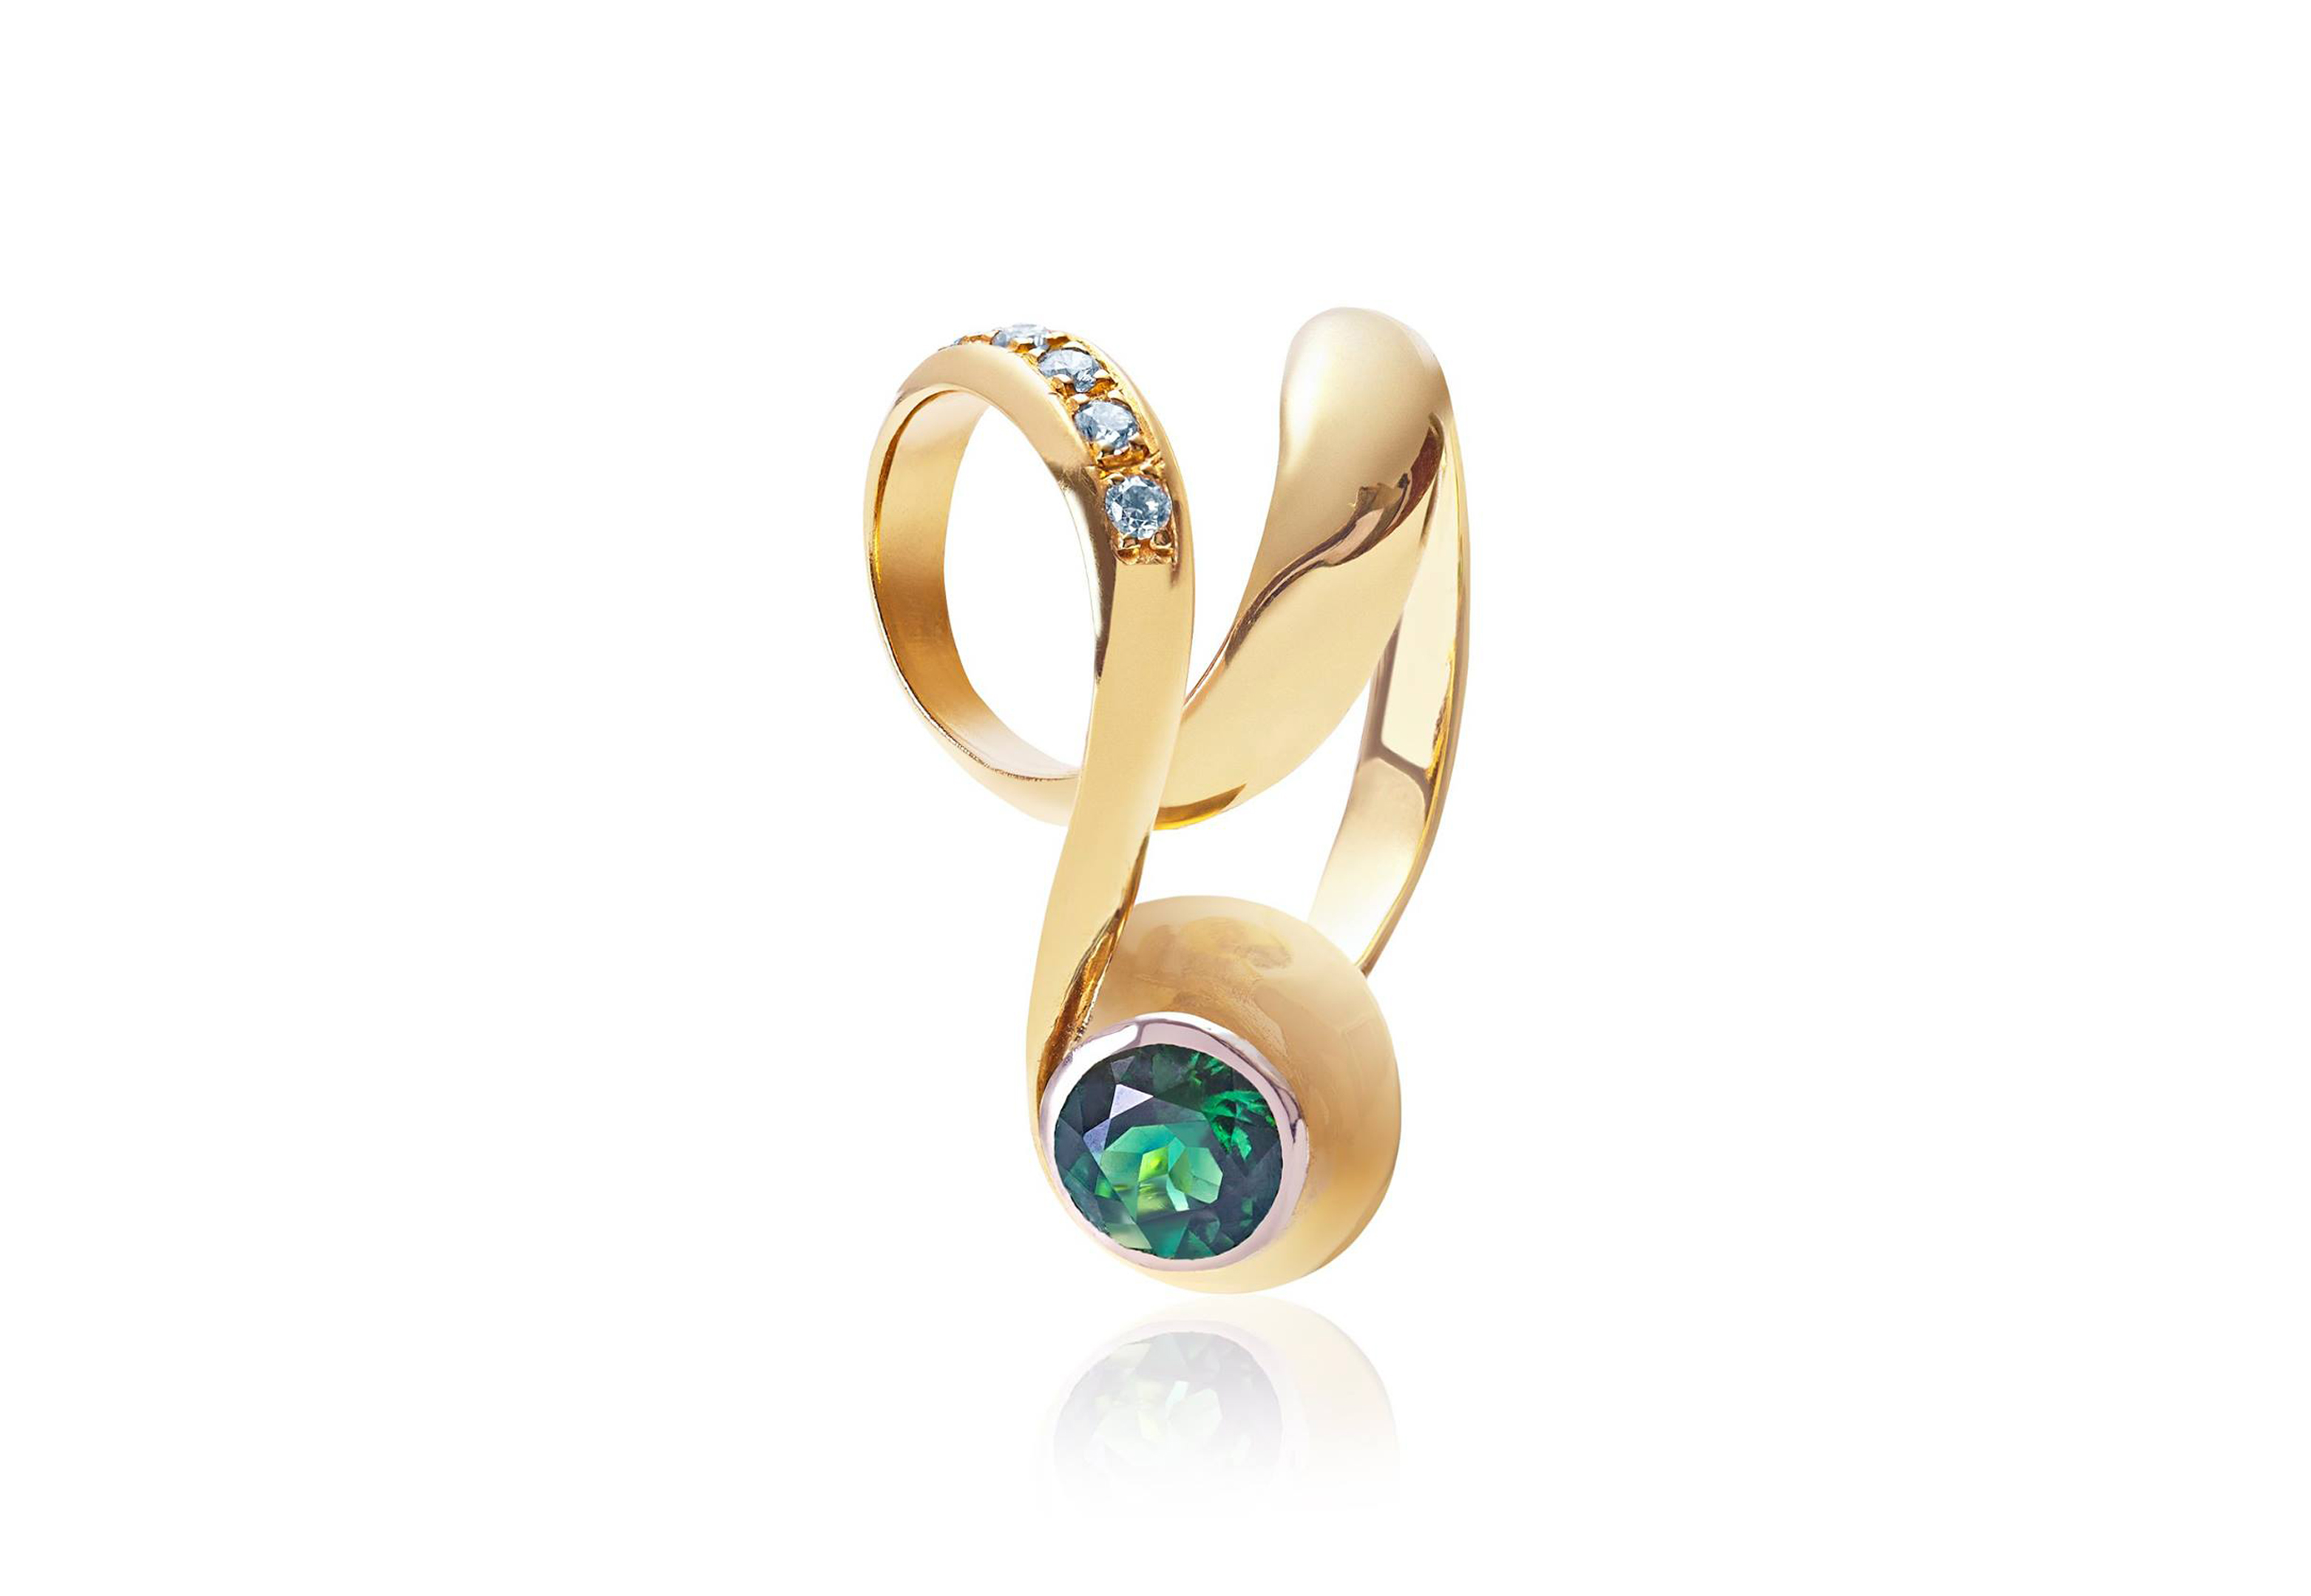 id diamond j sapphire jewelry green ring for karat sale anton tourmaline cocktail star barbara at rings master gold